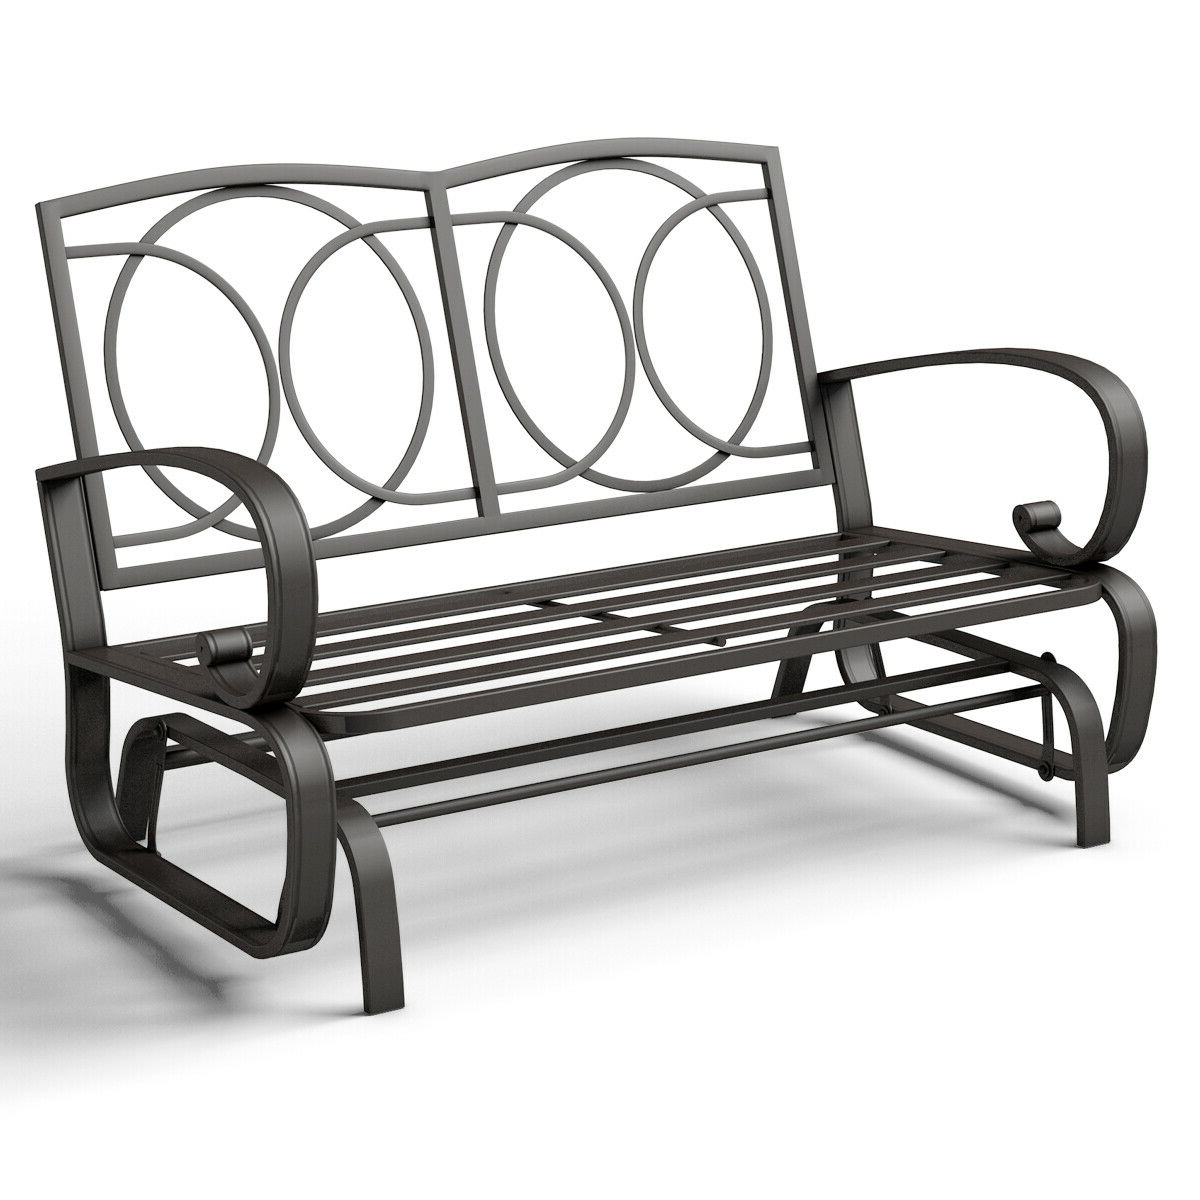 Famous Costway Glider Outdoor Patio Rocking Bench Loveseat Pertaining To Black Steel Patio Swing Glider Benches Powder Coated (View 12 of 30)